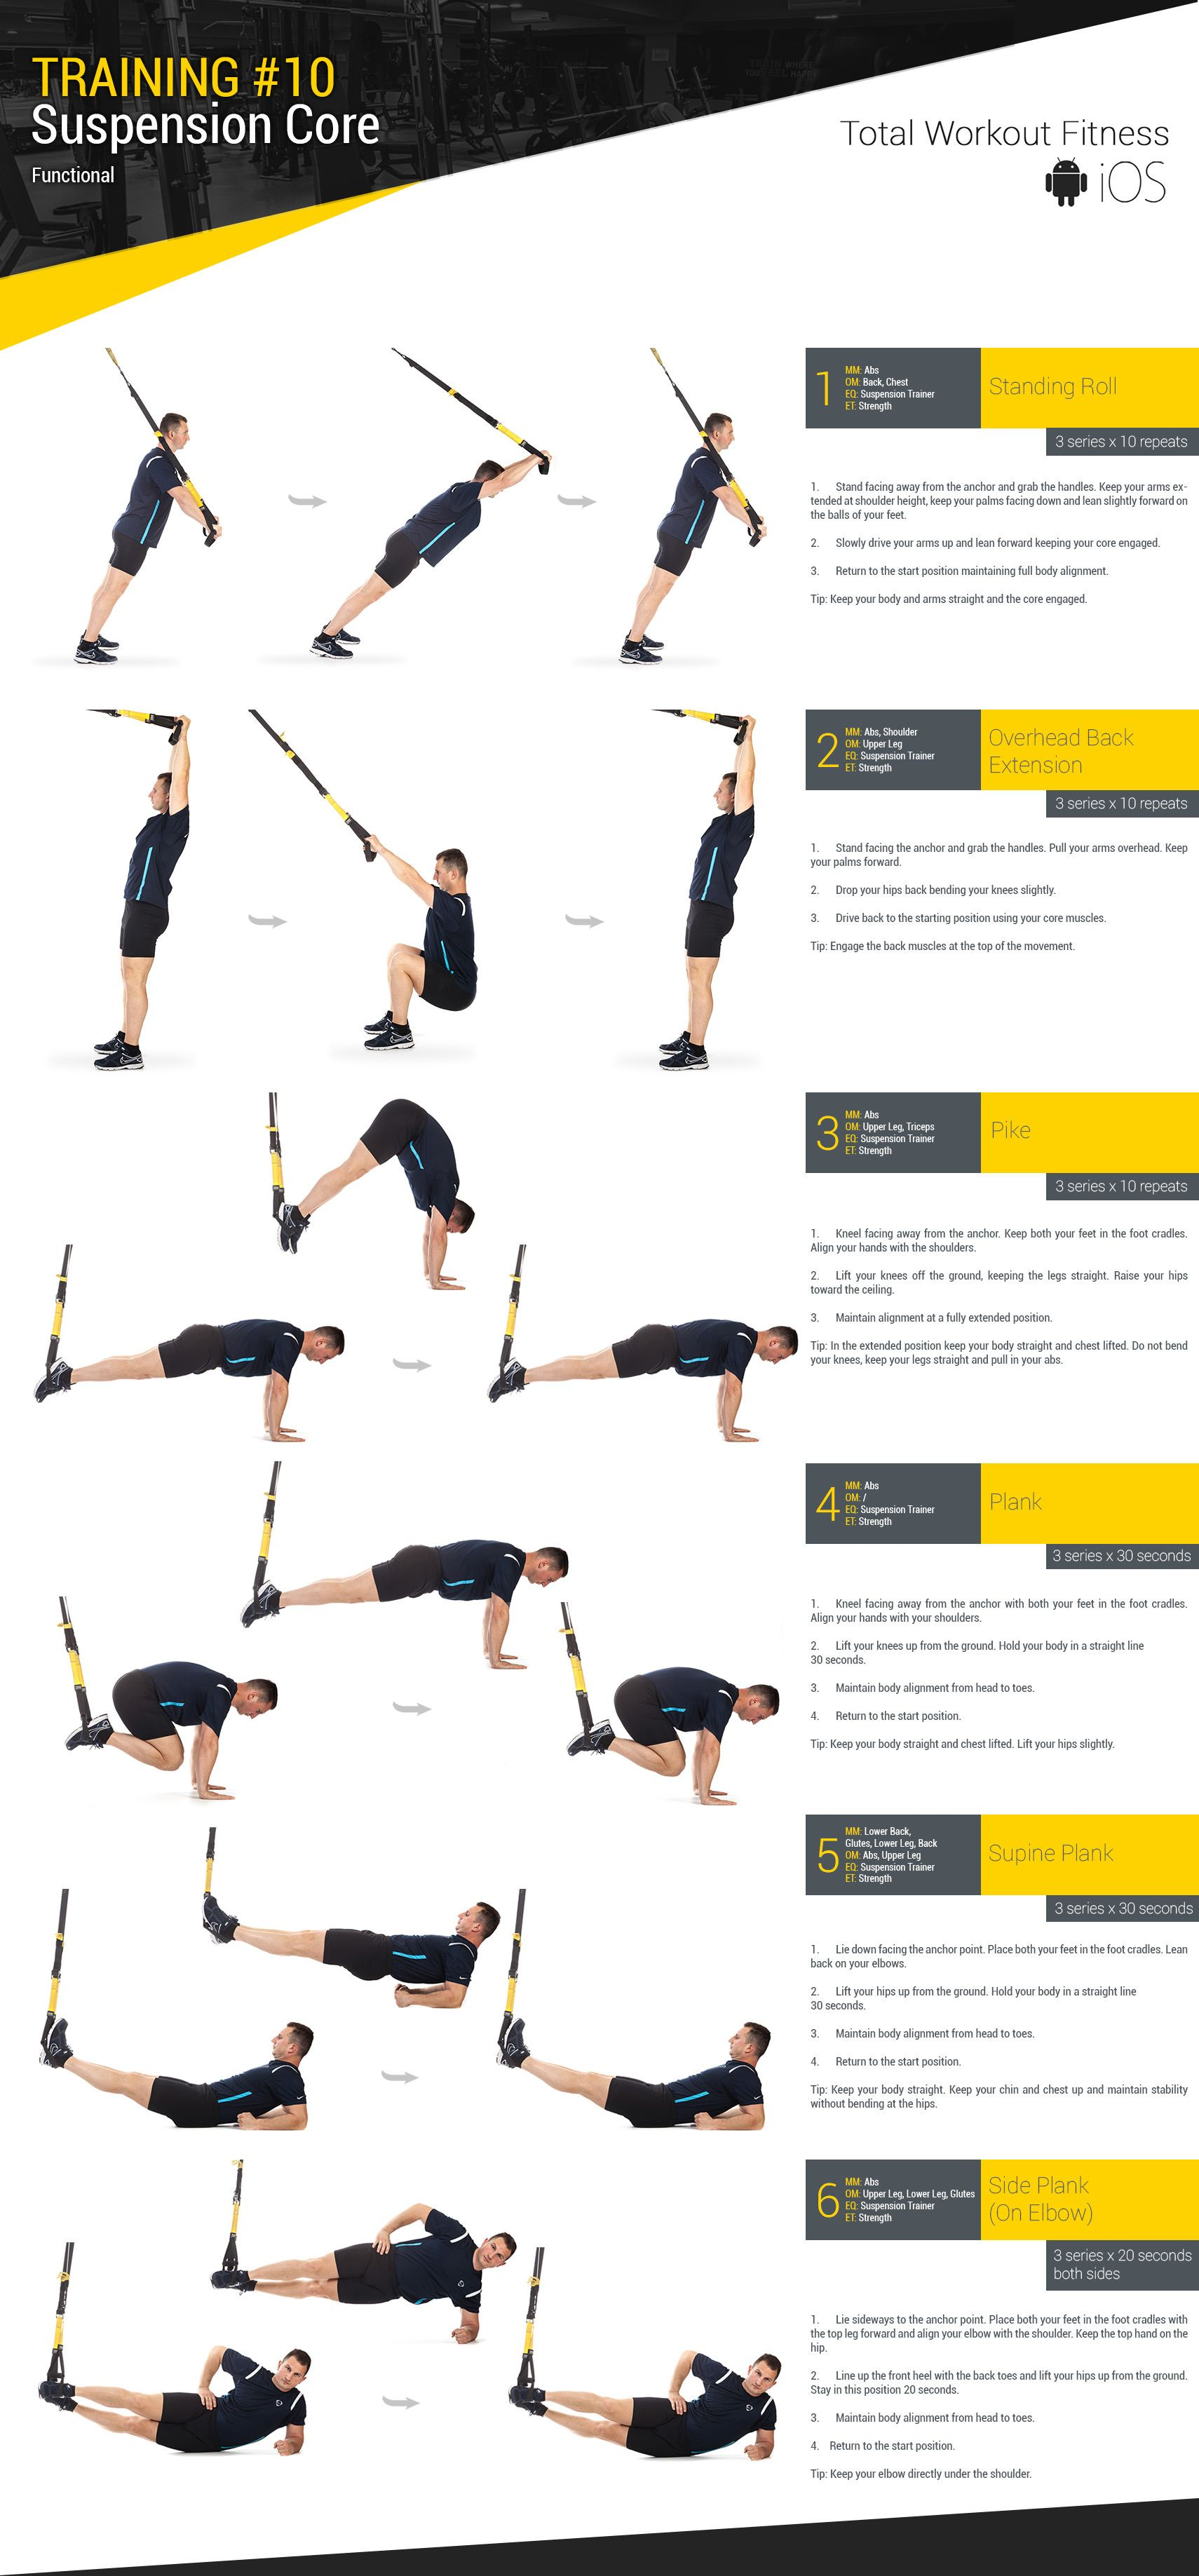 Training 10 Suspension Core Total Workout Fitness Trx Ejercicios Ejercicios De Entrenamiento Rutinas De Entrenamiento